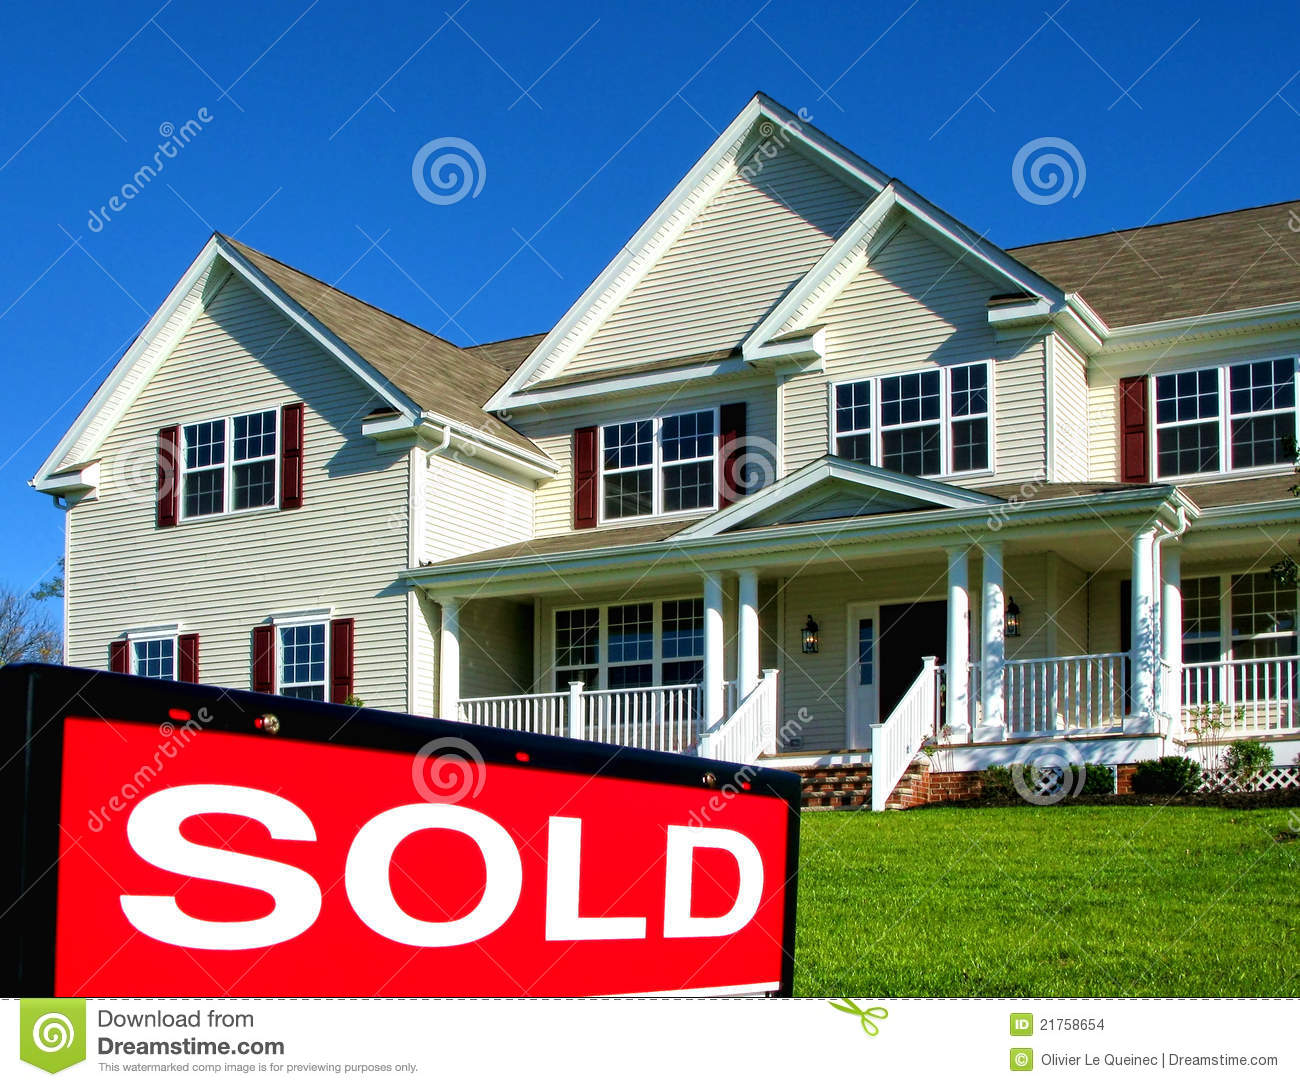 Real Estate Realtor Sold Sign And House For Sale Stock